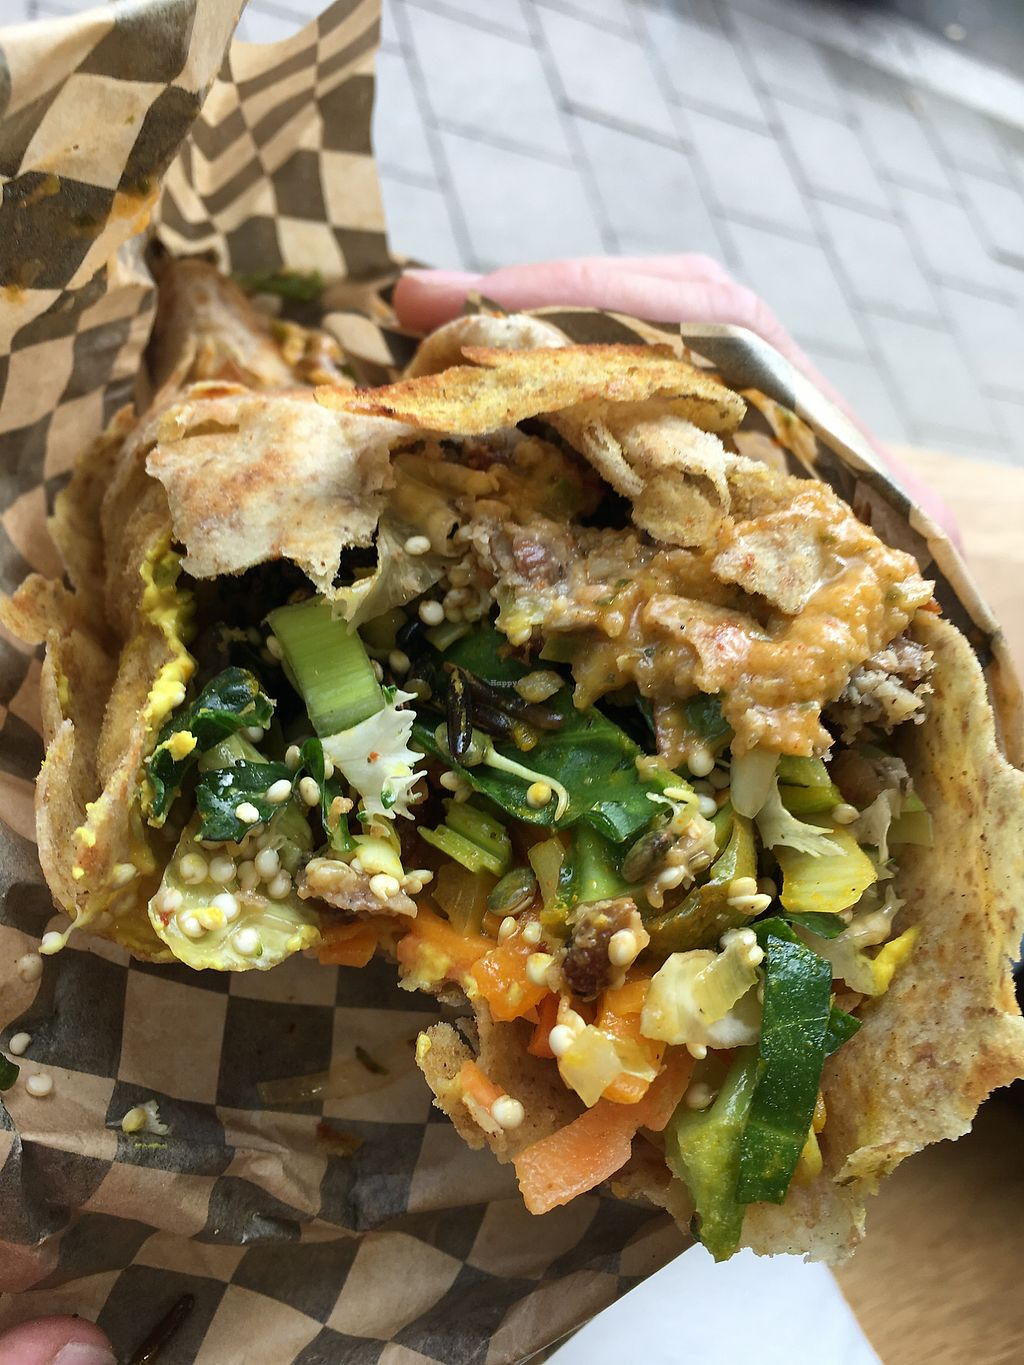 """Photo of CLOSED: Livity Kitchen  by <a href=""""/members/profile/SunshineMartyn"""">SunshineMartyn</a> <br/>The famous wrap, my partner had already taken a big bite out of it <br/> November 10, 2017  - <a href='/contact/abuse/image/102147/323874'>Report</a>"""